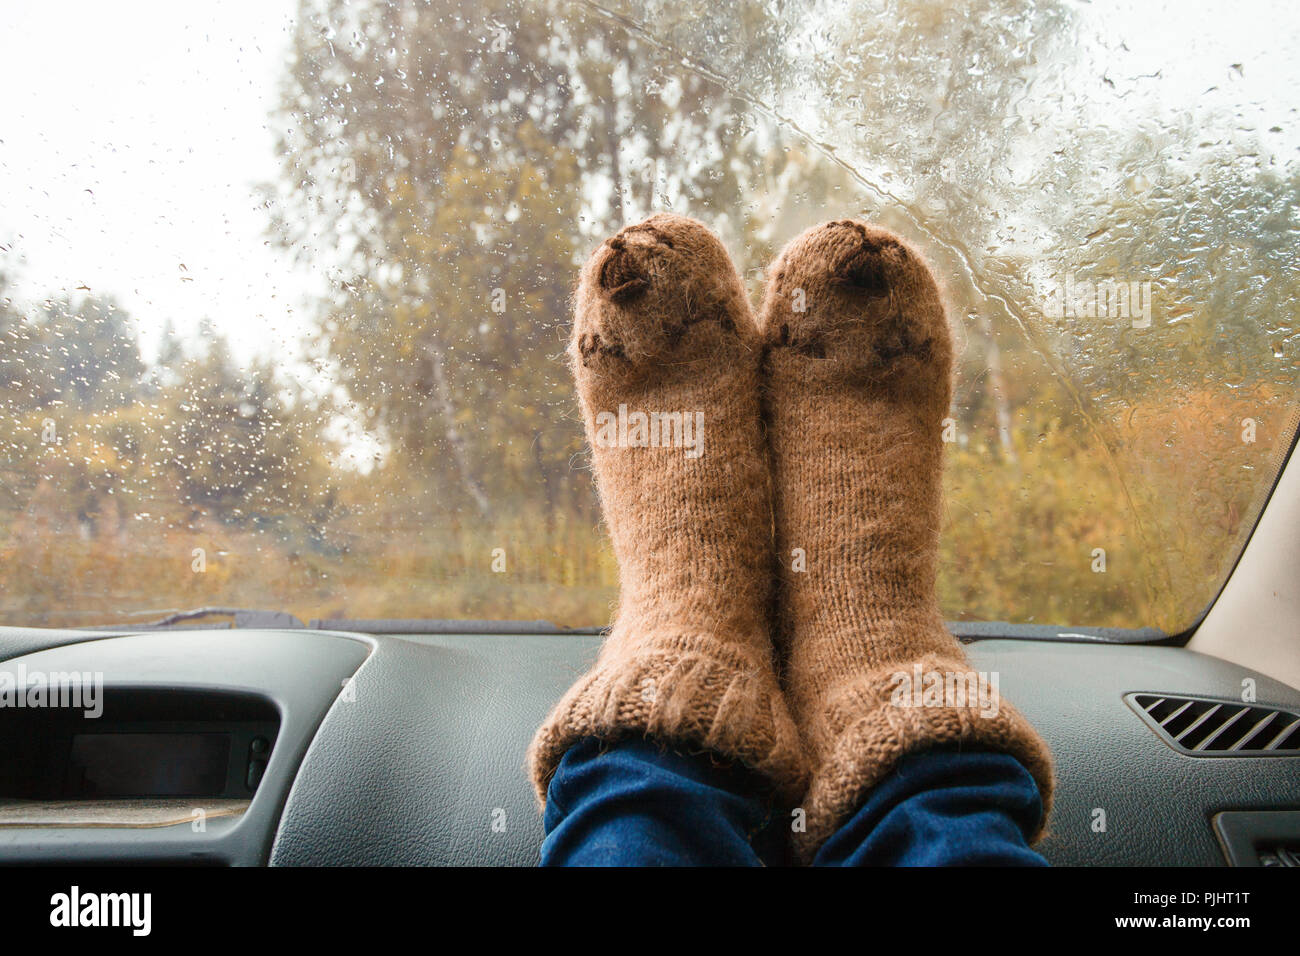 Feet in warm cute socks on car dashboard. Travel, road trip and autumn fall concept. - Stock Image